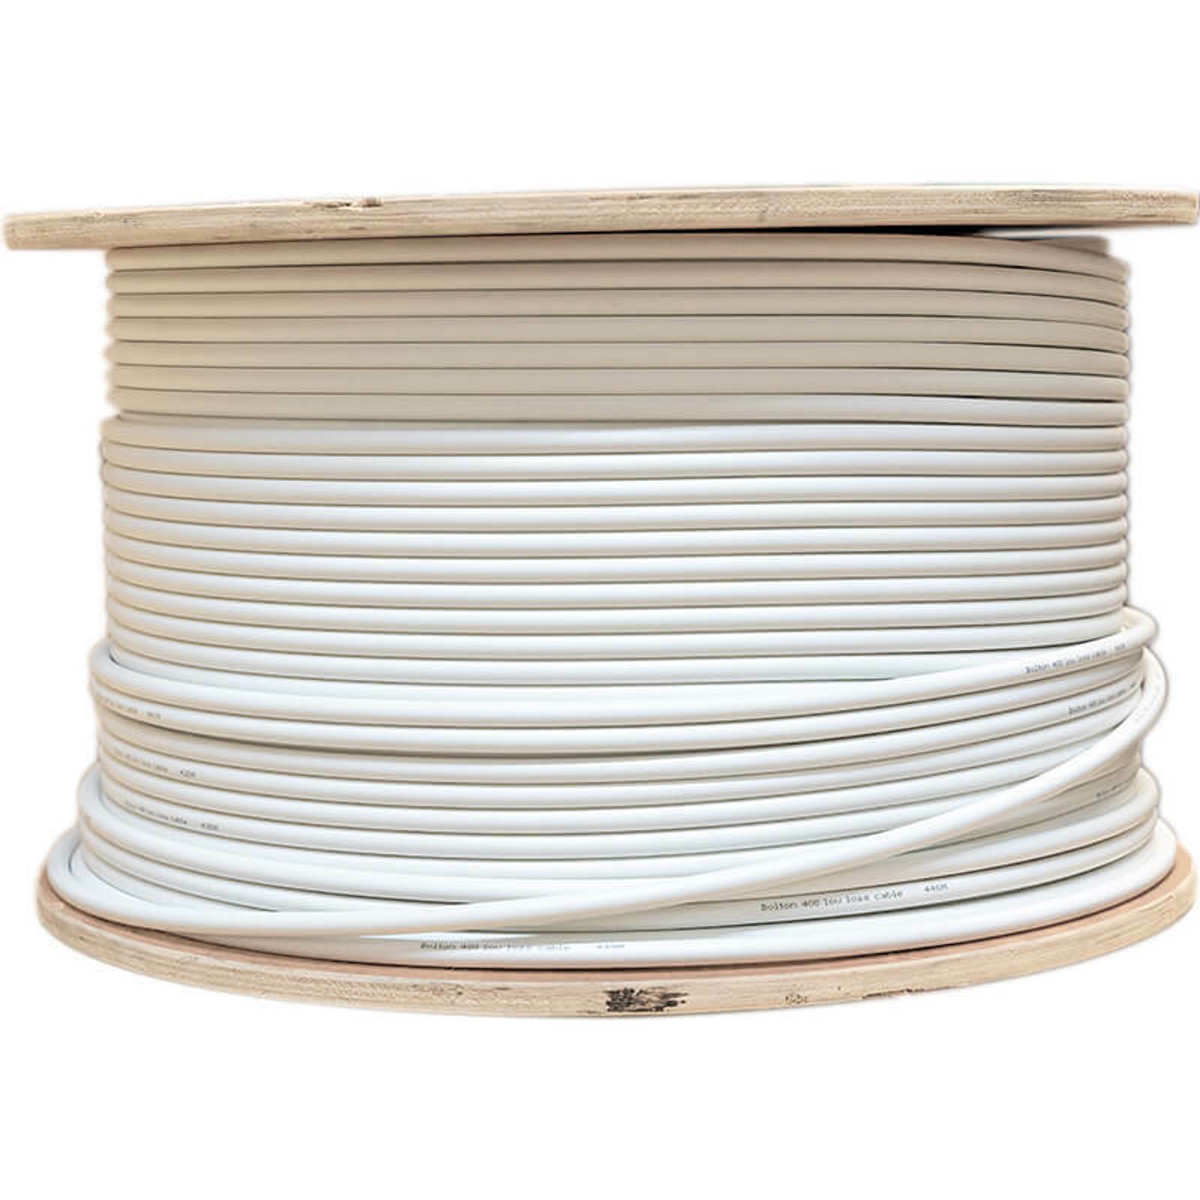 Bolton Technical Bolton400 White Ultra Low-Loss Cable Spool | 500ft